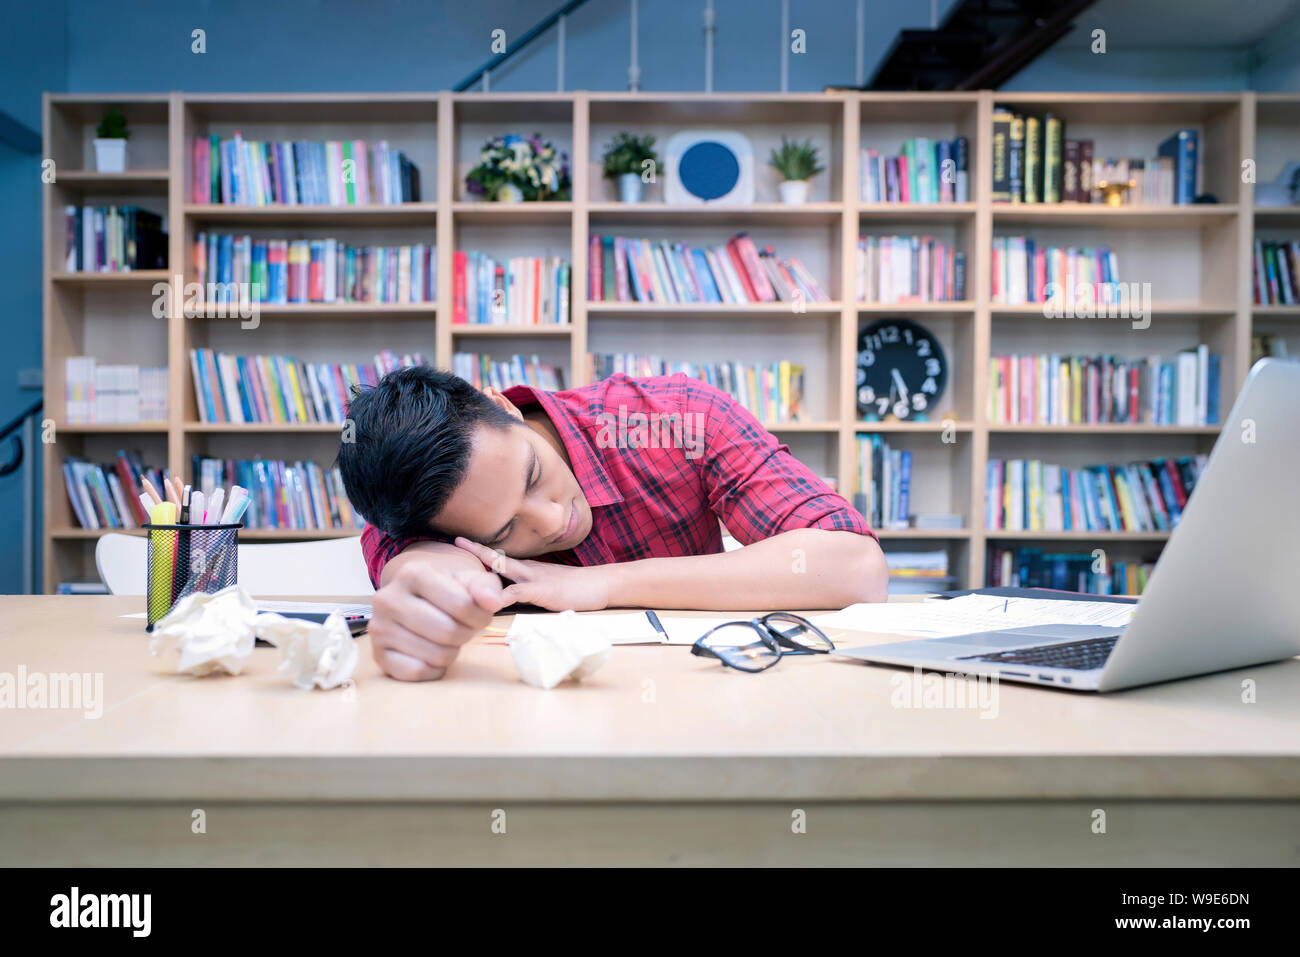 Young Business Entrepreneur Sleeping After Work Stress To Find Out New Business Ideas At Home Office Conceptual For Startup Small Businesses Entrepren Stock Photo Alamy